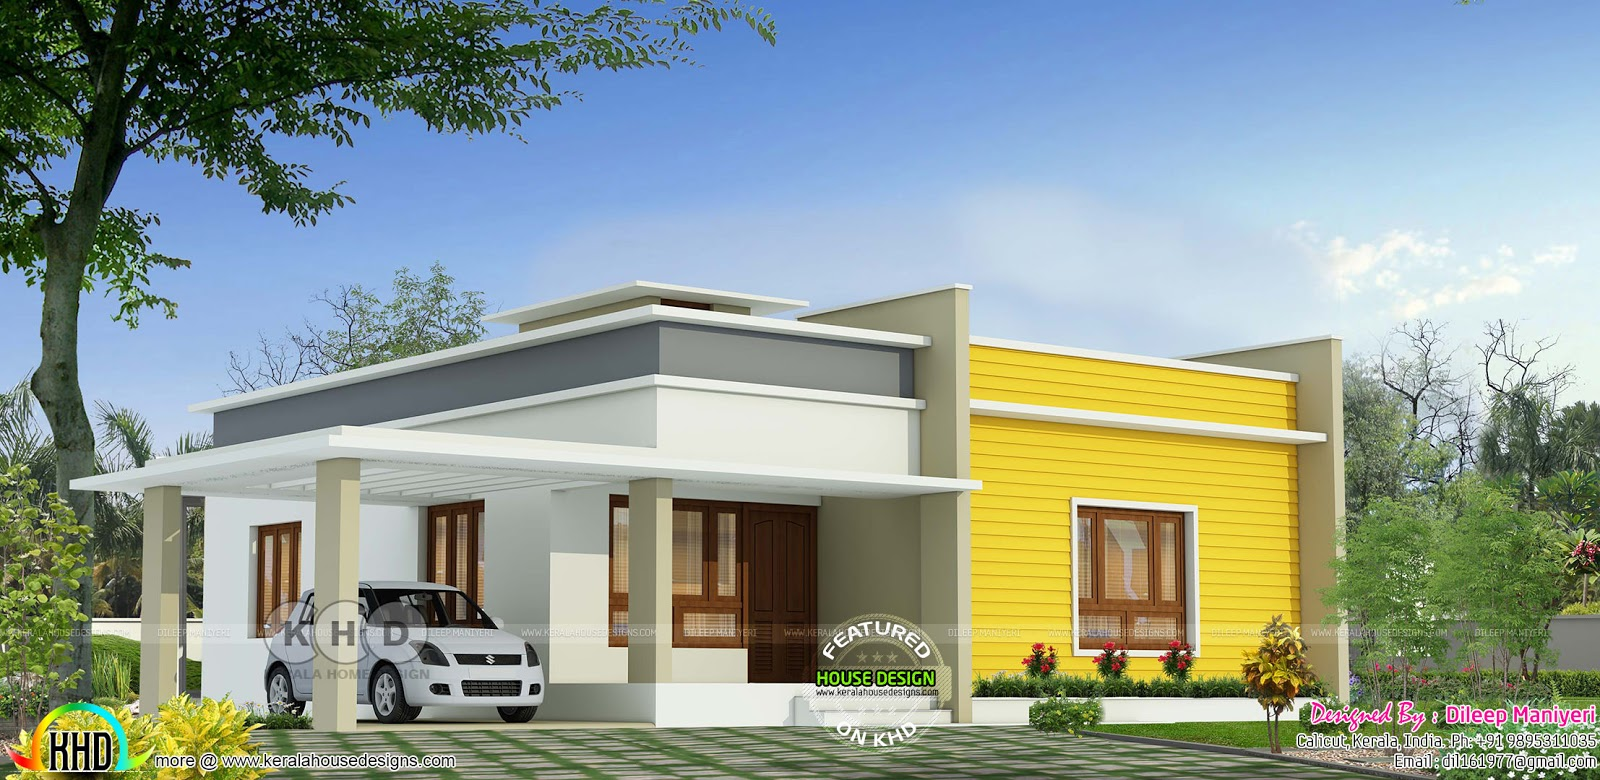 July 2019 Kerala Home Design And Floor Plans 8000 Houses